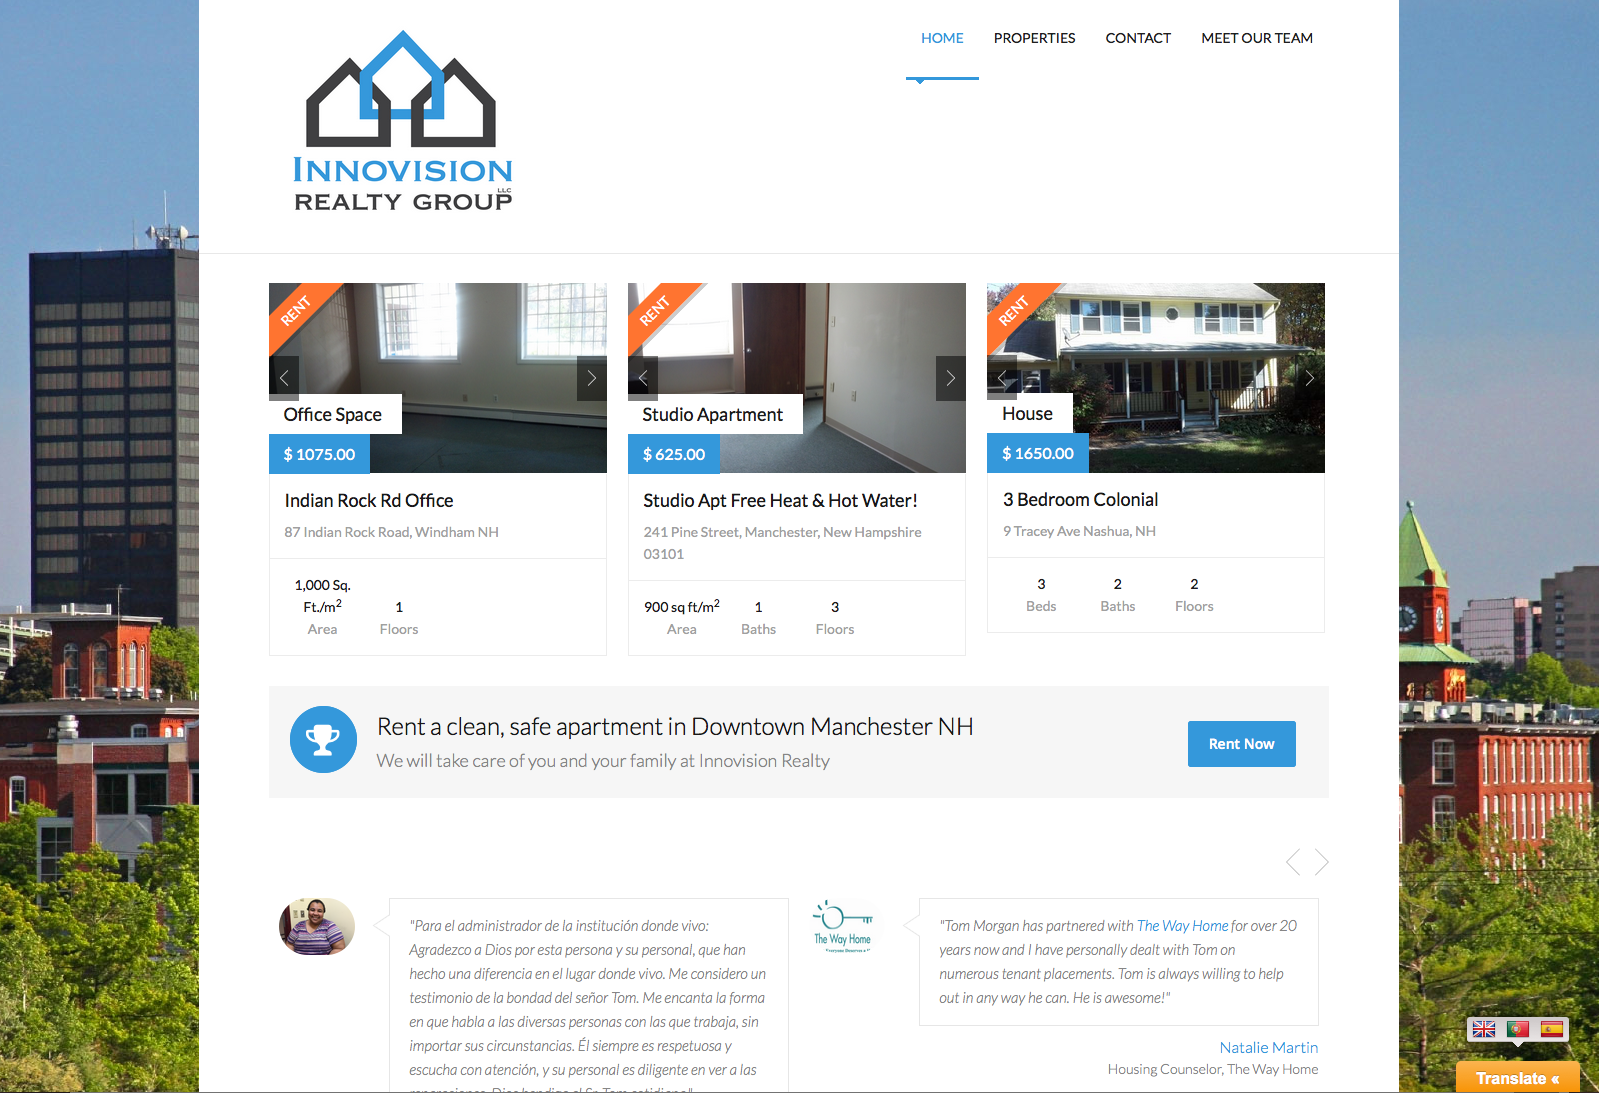 Innovision Realty Group